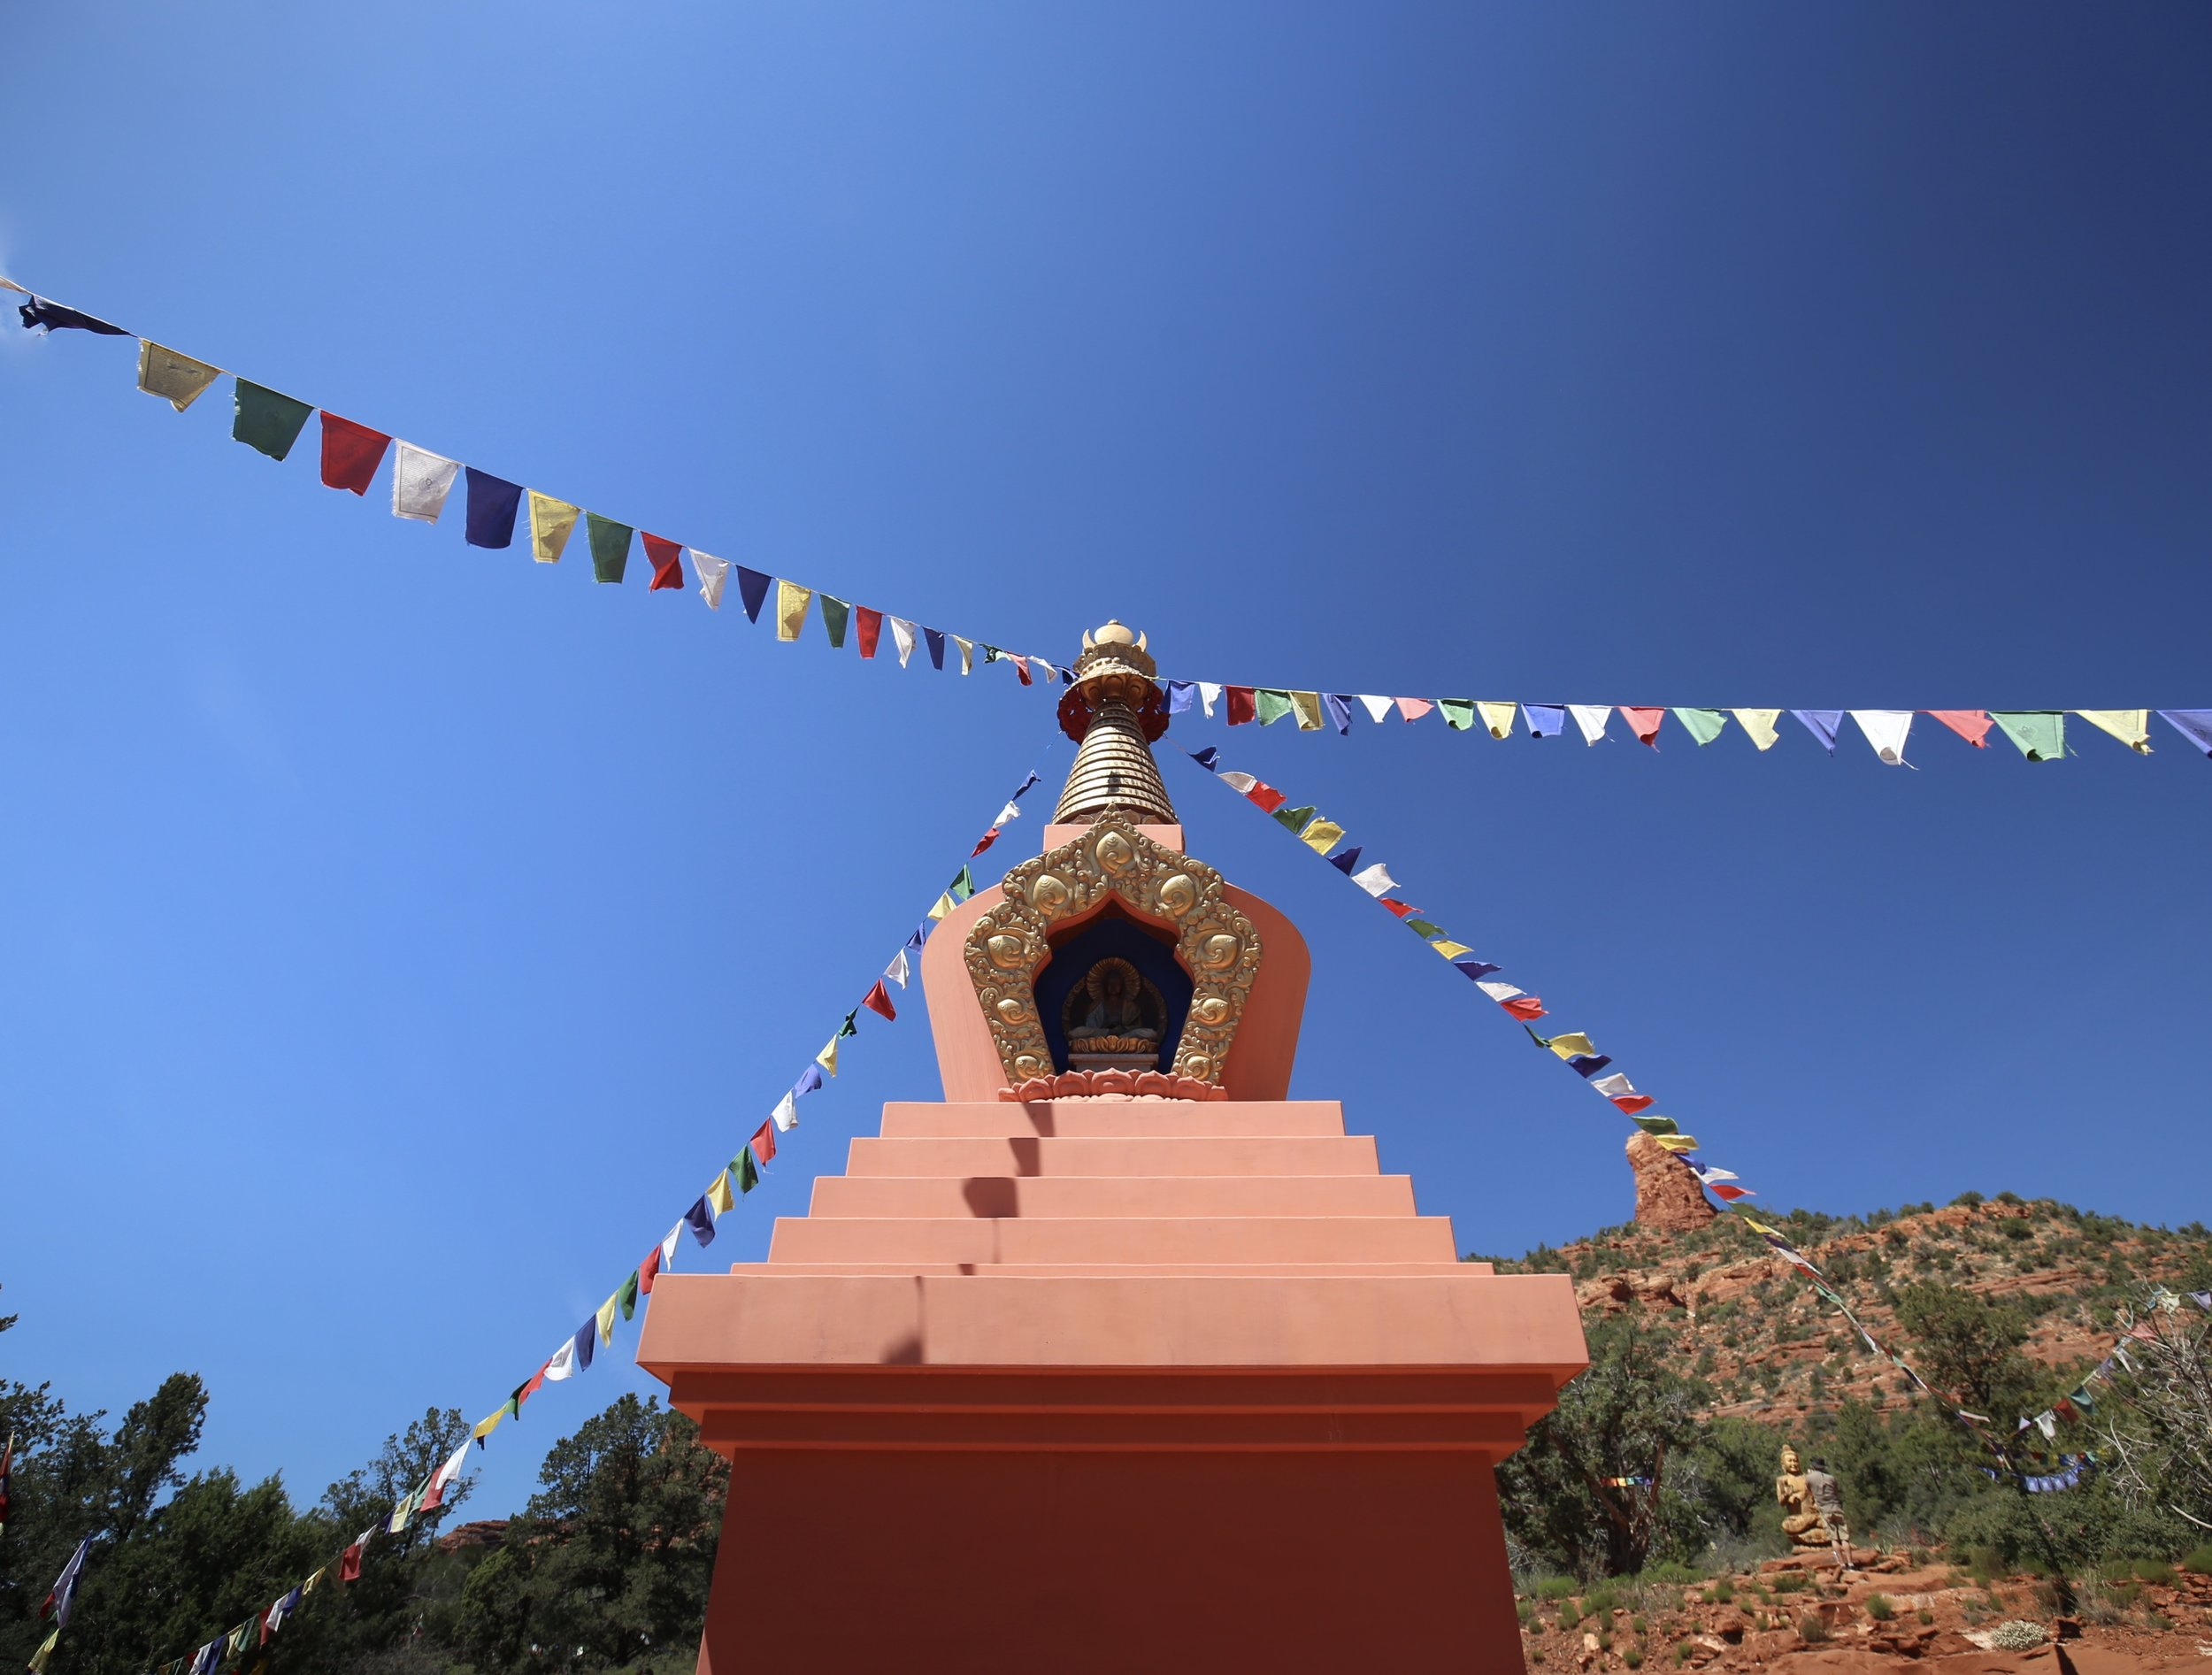 The peace stupa of Sedona, with prayer flags flying.